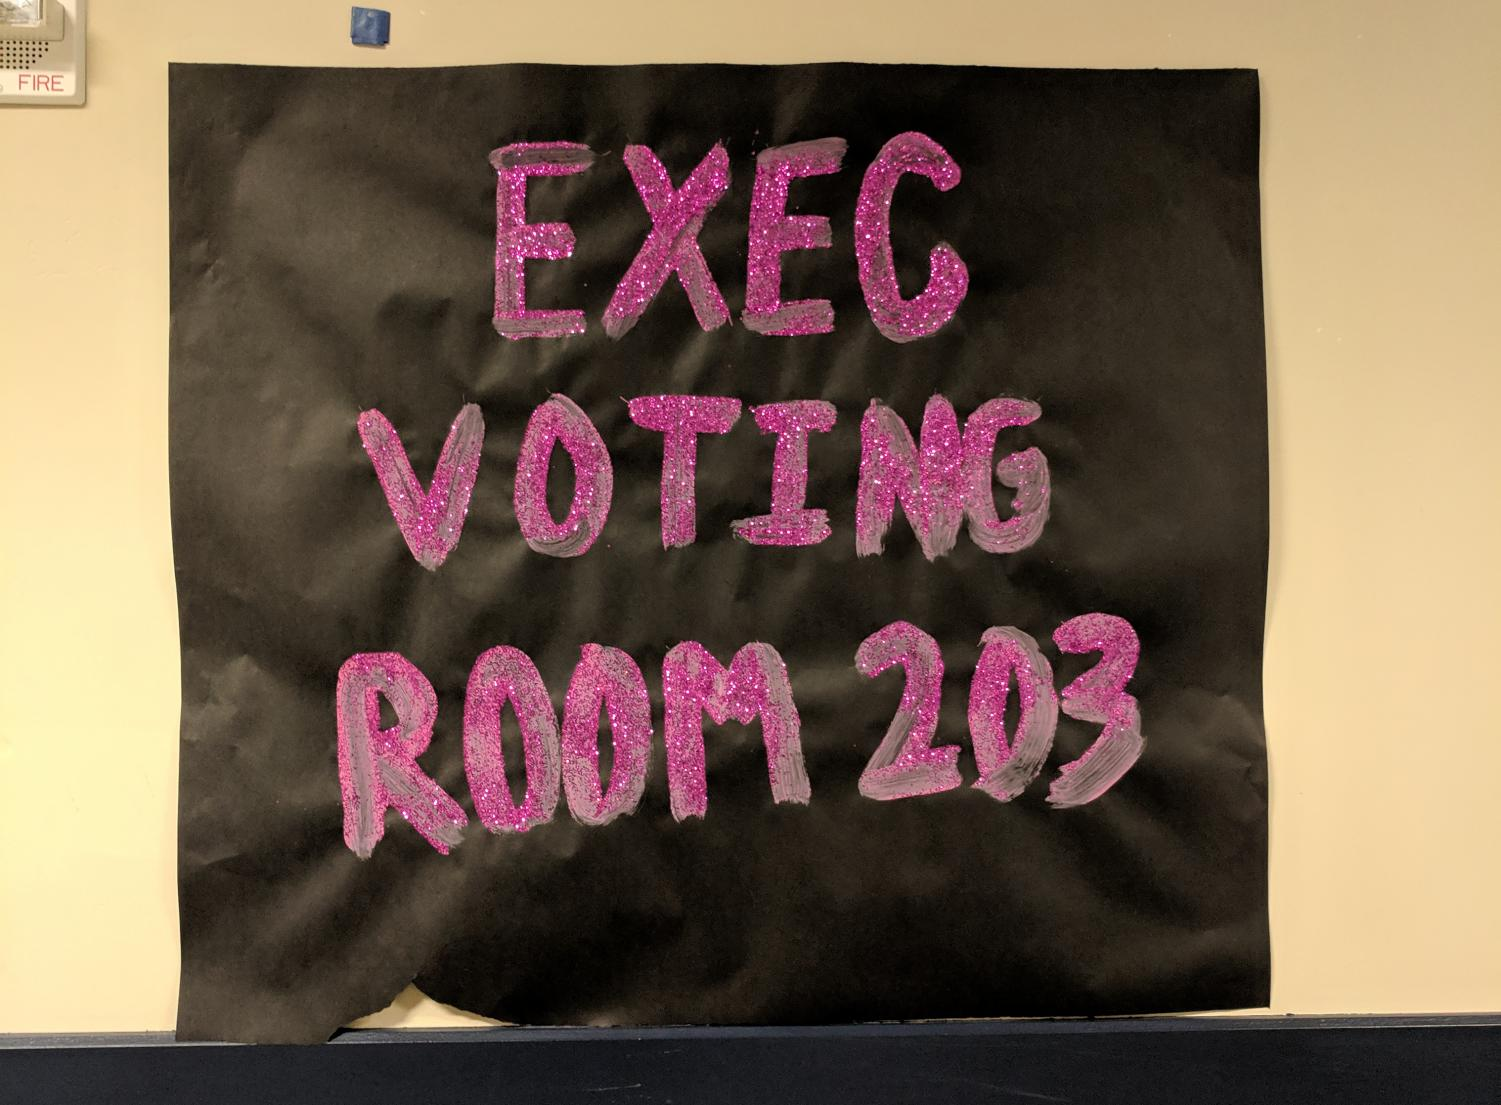 A poster for the voting center in room 203.